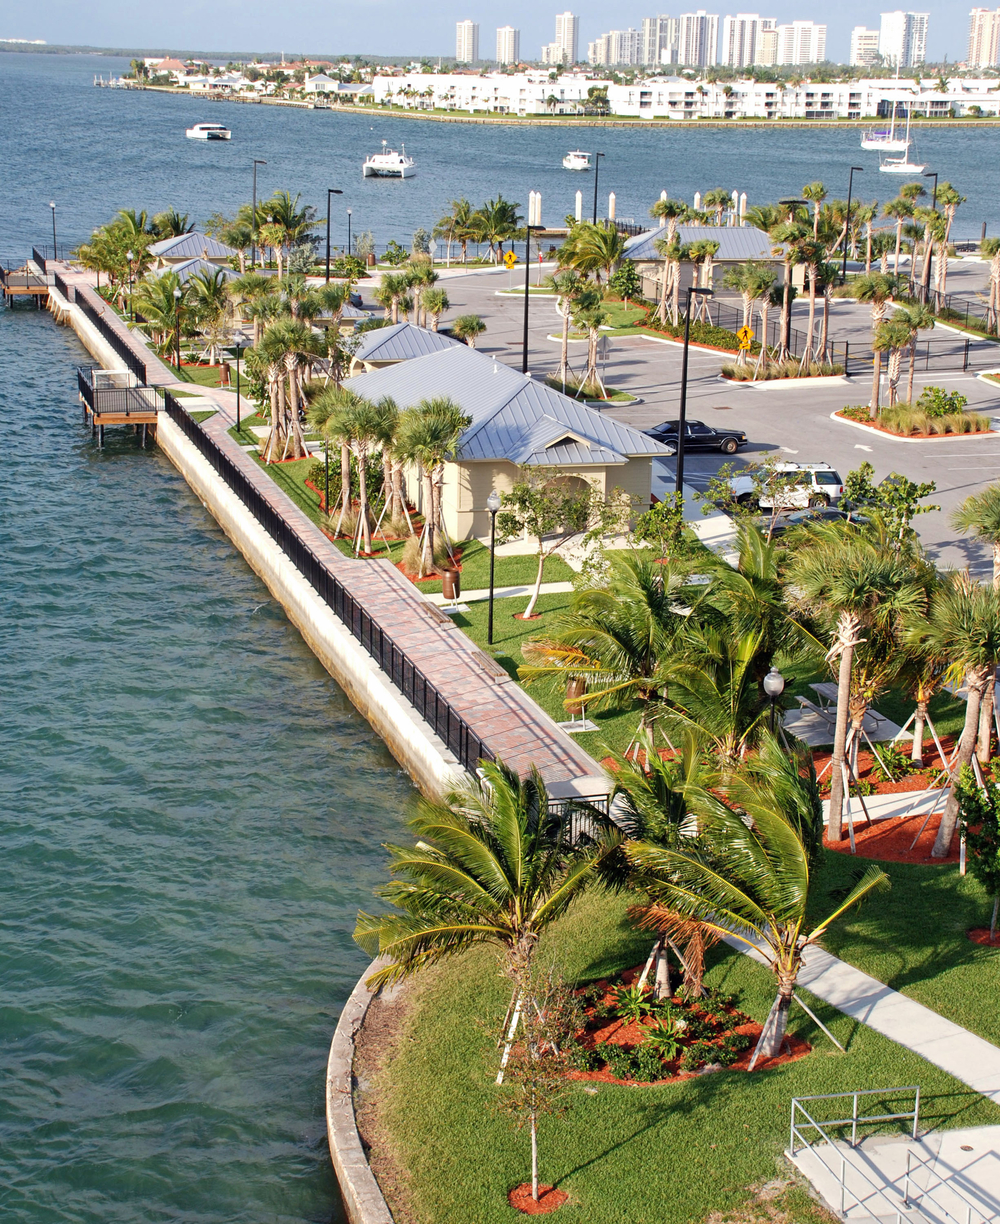 Phil Foster Park Palm Beach County Florida Site Amenities.JPG